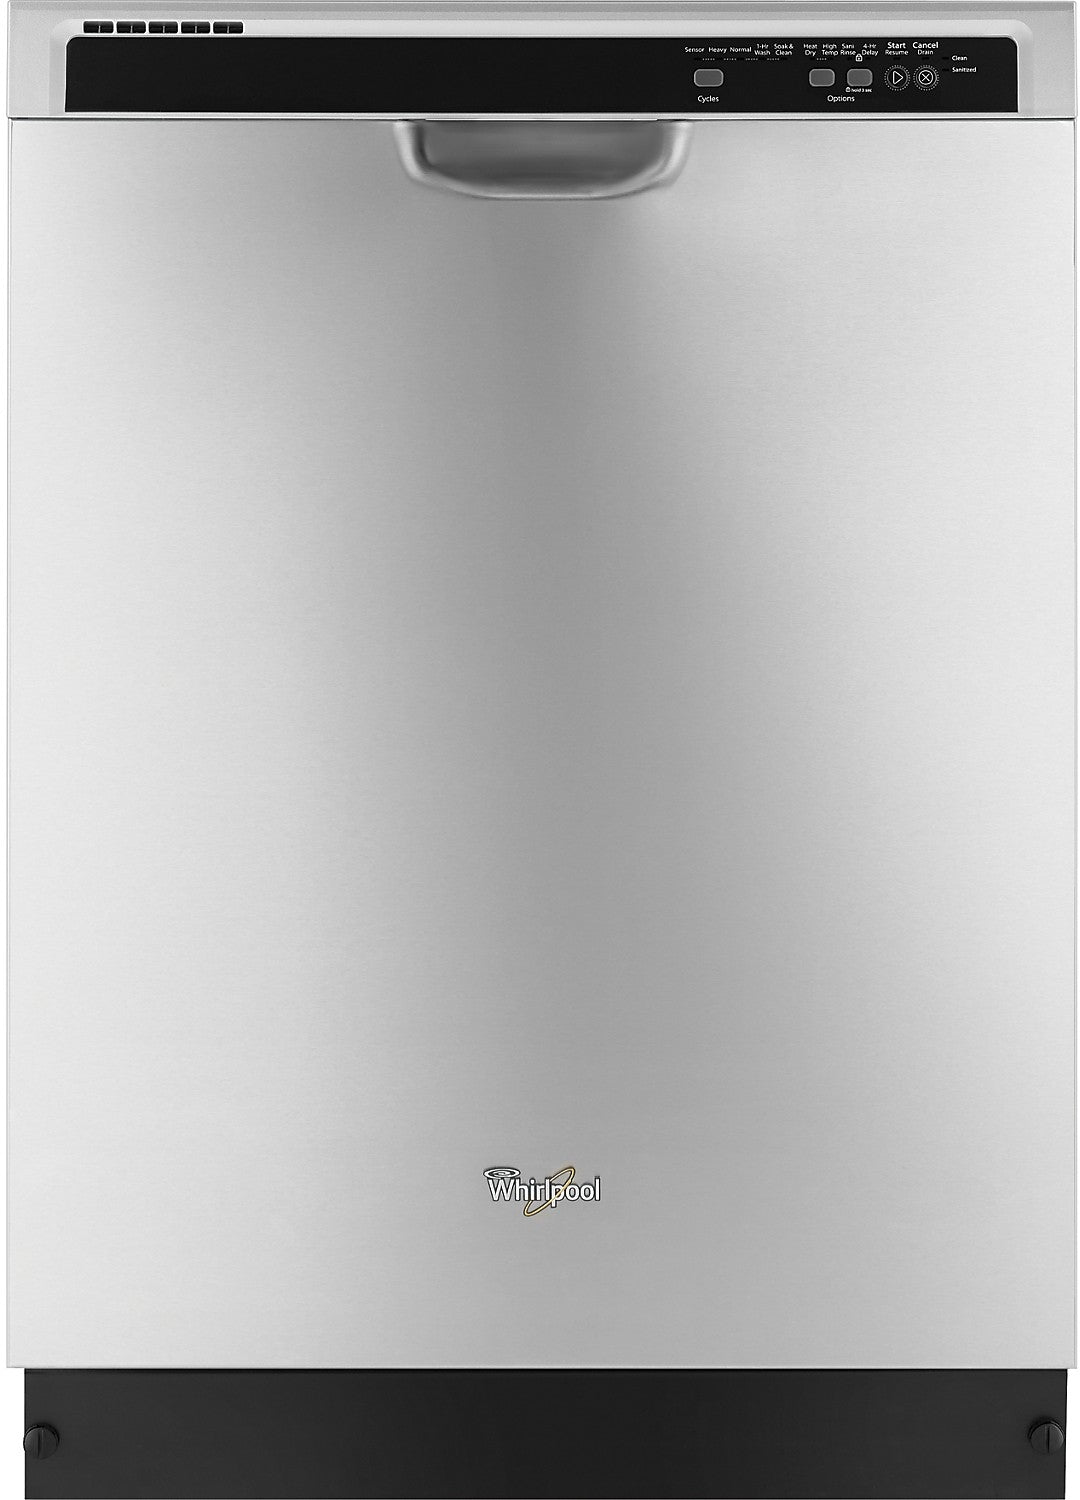 Whirlpool 24 Built In Dishwasher Stainless Steel The Brick